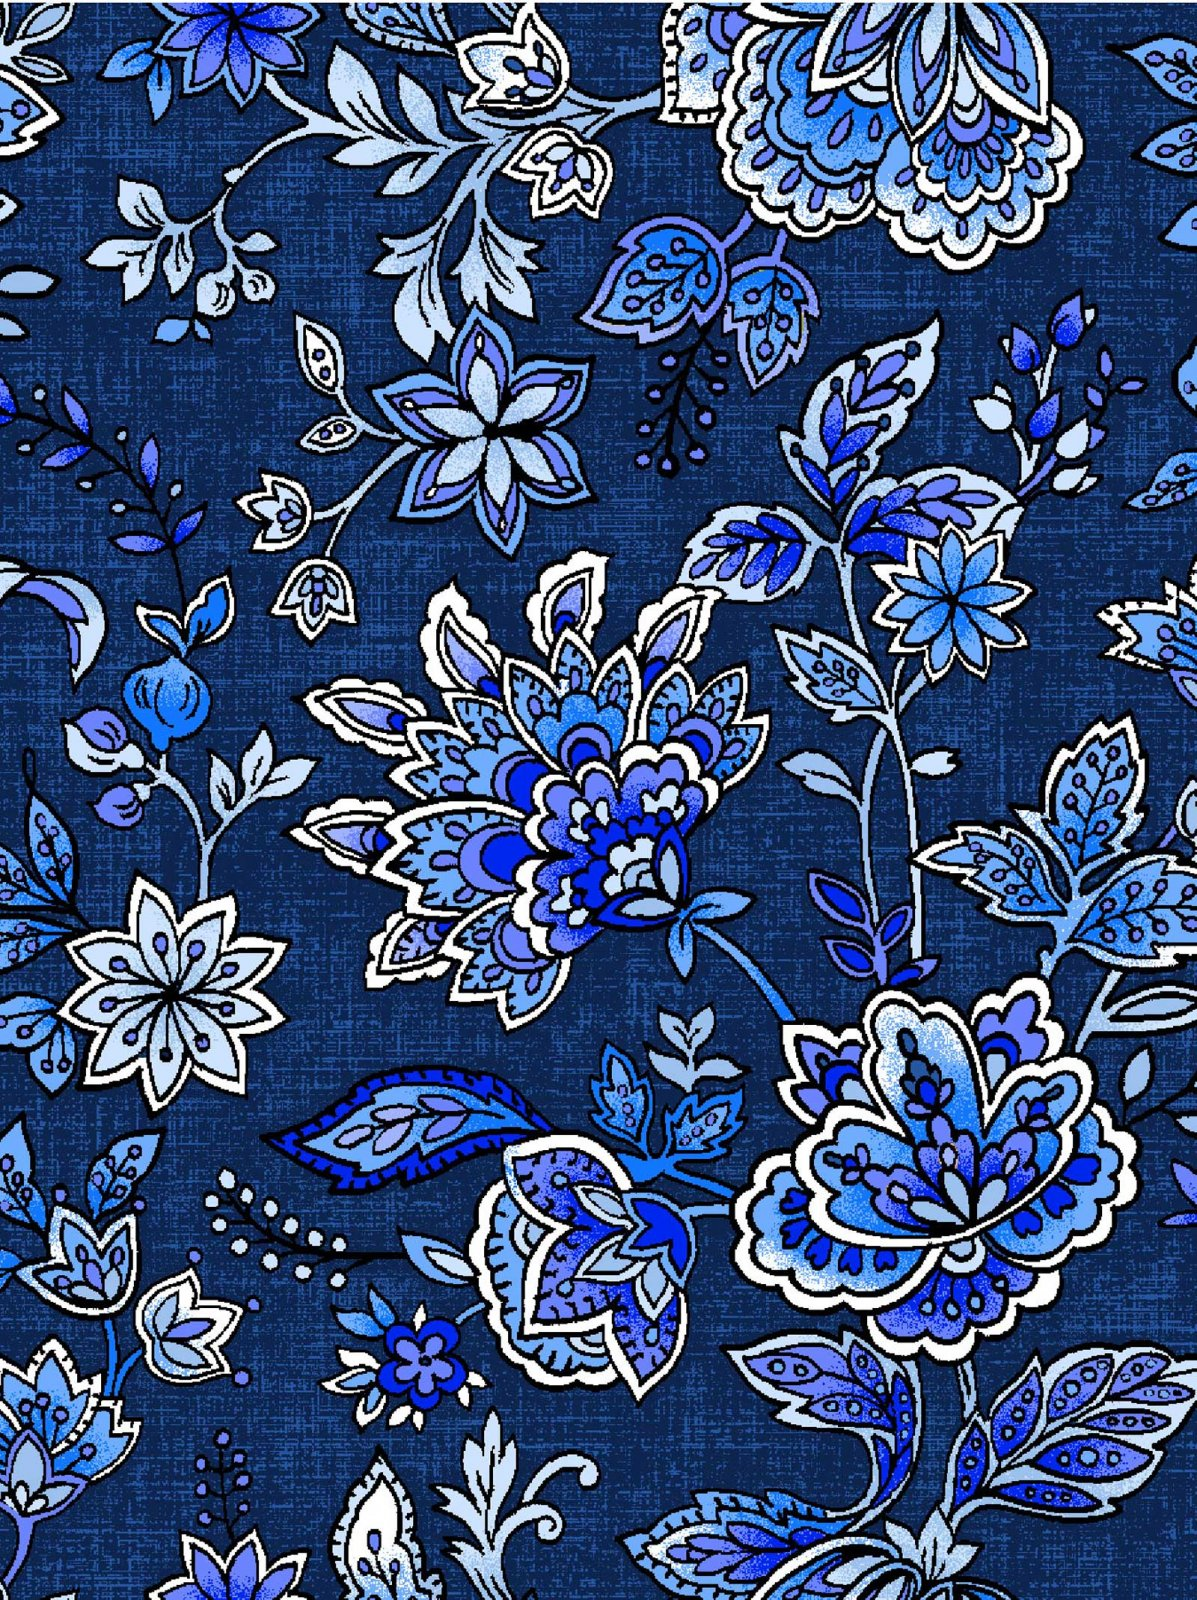 Peacocks in Blue - Jacobean Floral Dk Blue